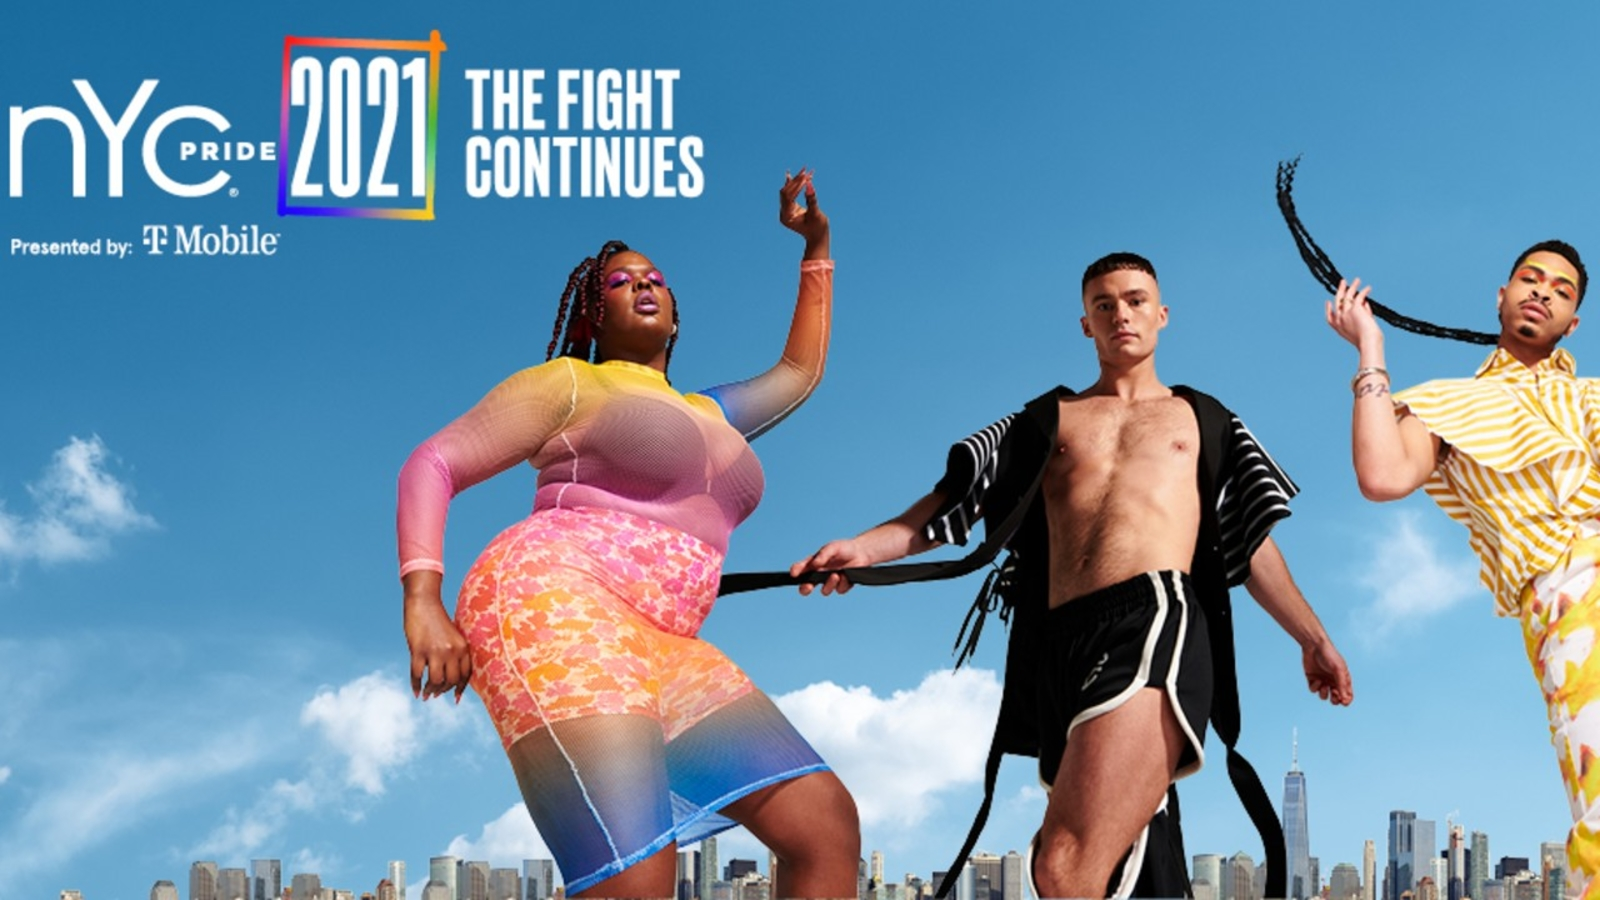 NYC Pride announces theme for 2021: The Fight Continues